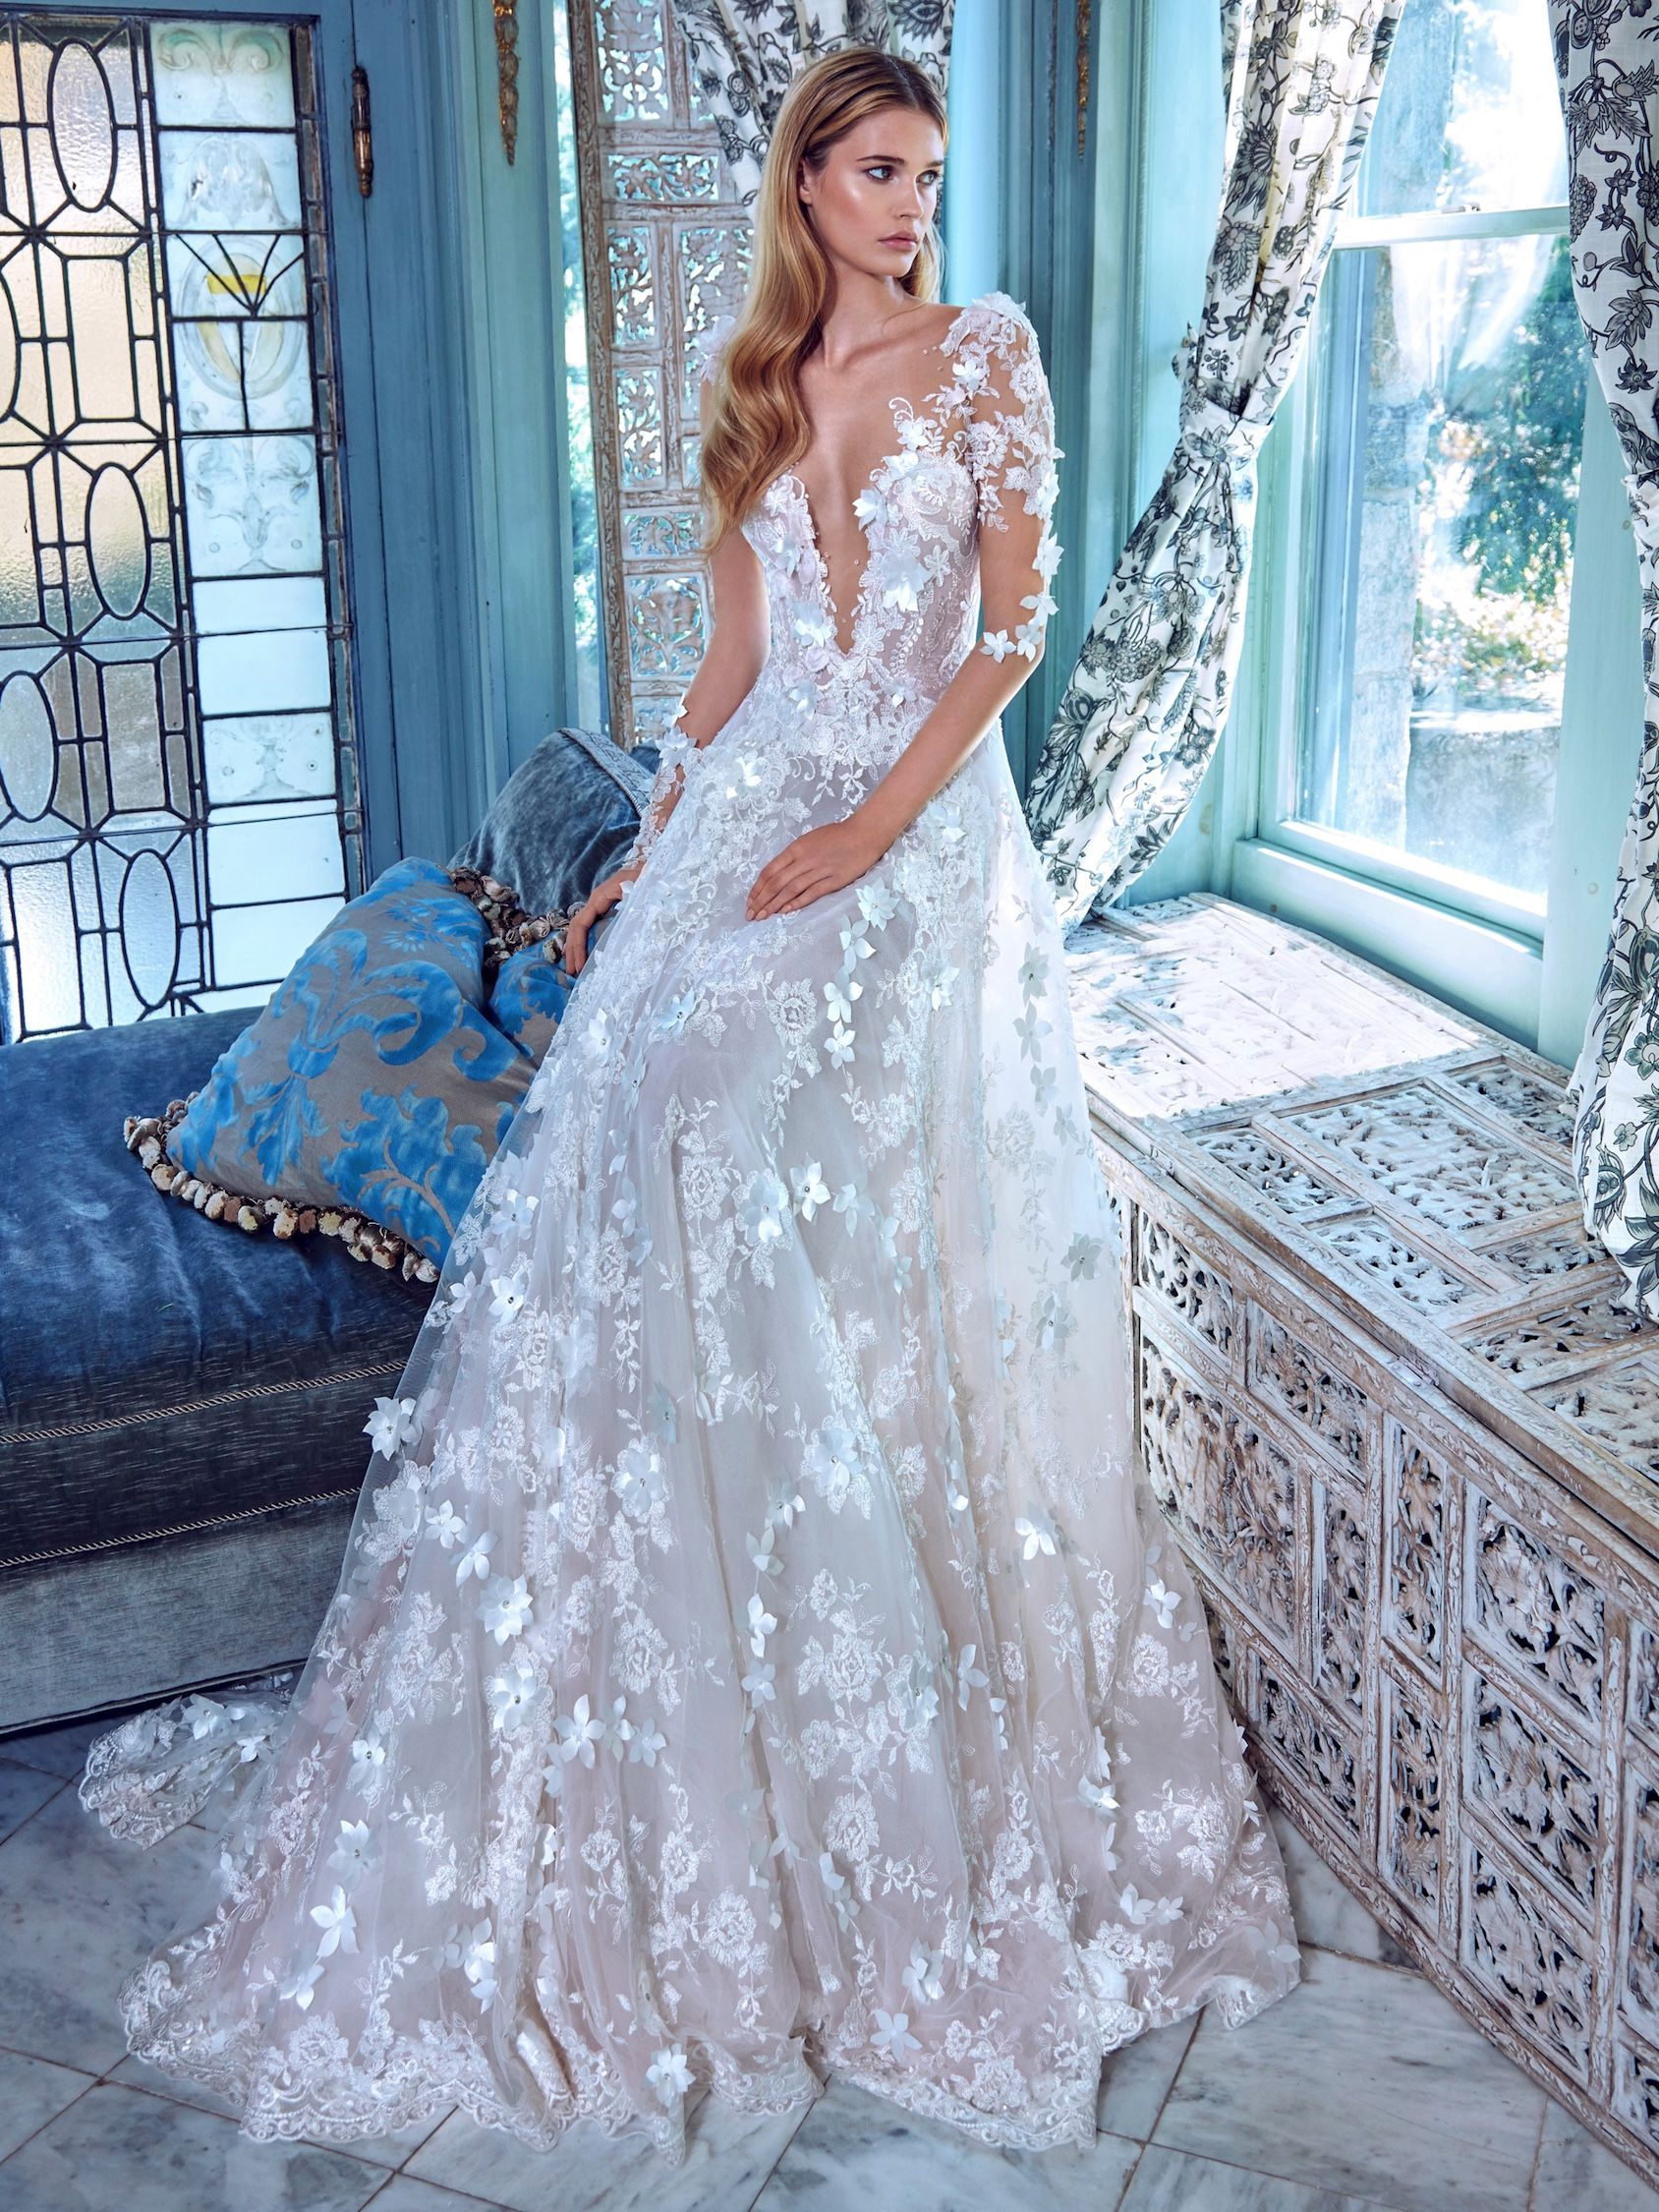 Arabella | Pinterest | Tulle fabric, Full skirts and Delicate